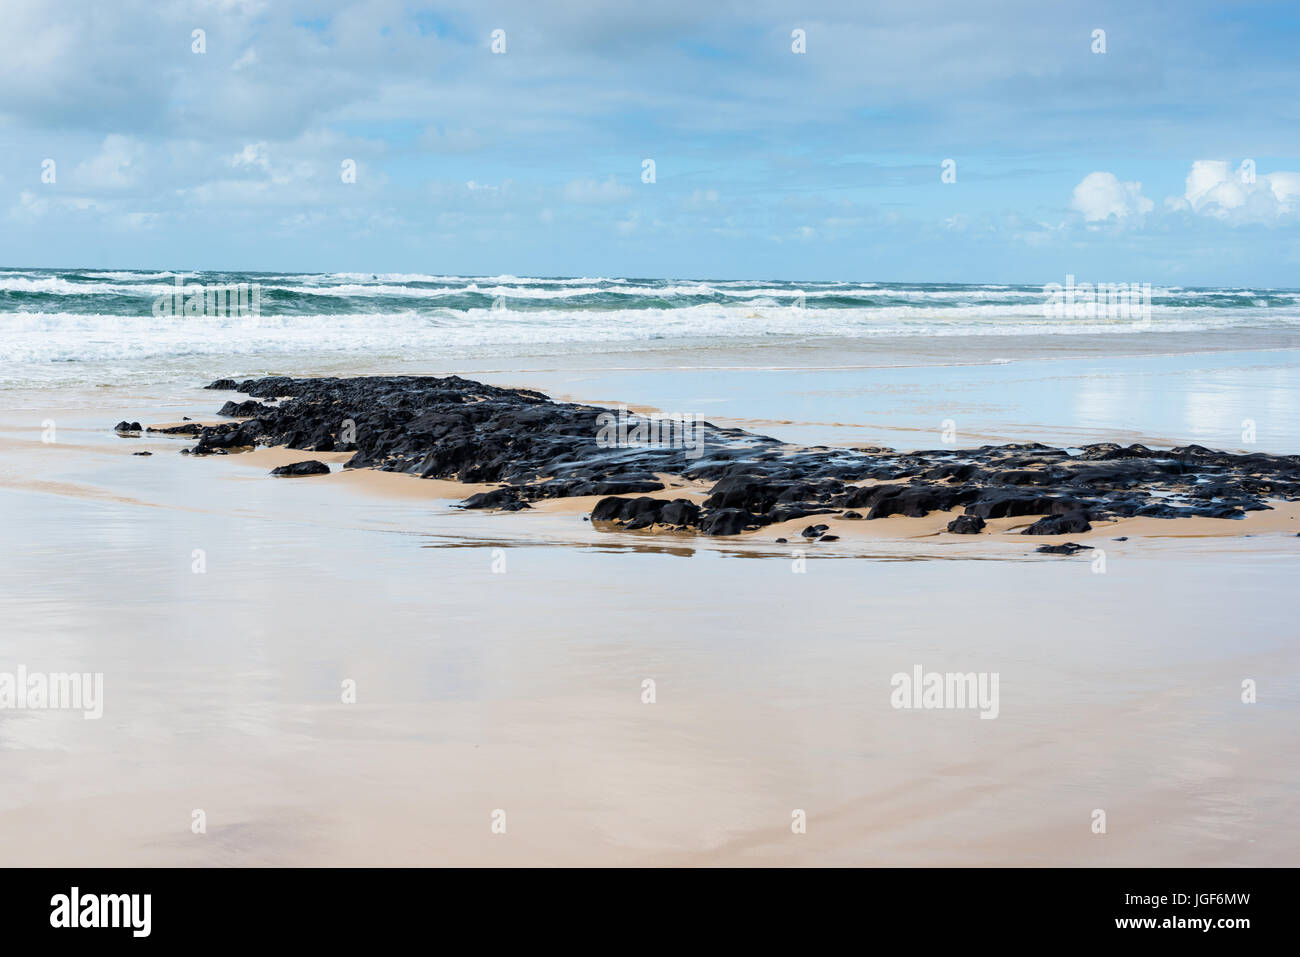 Coffee rocks made of sand on the beach at Fraser Island, Queensland, Australia. - Stock Image